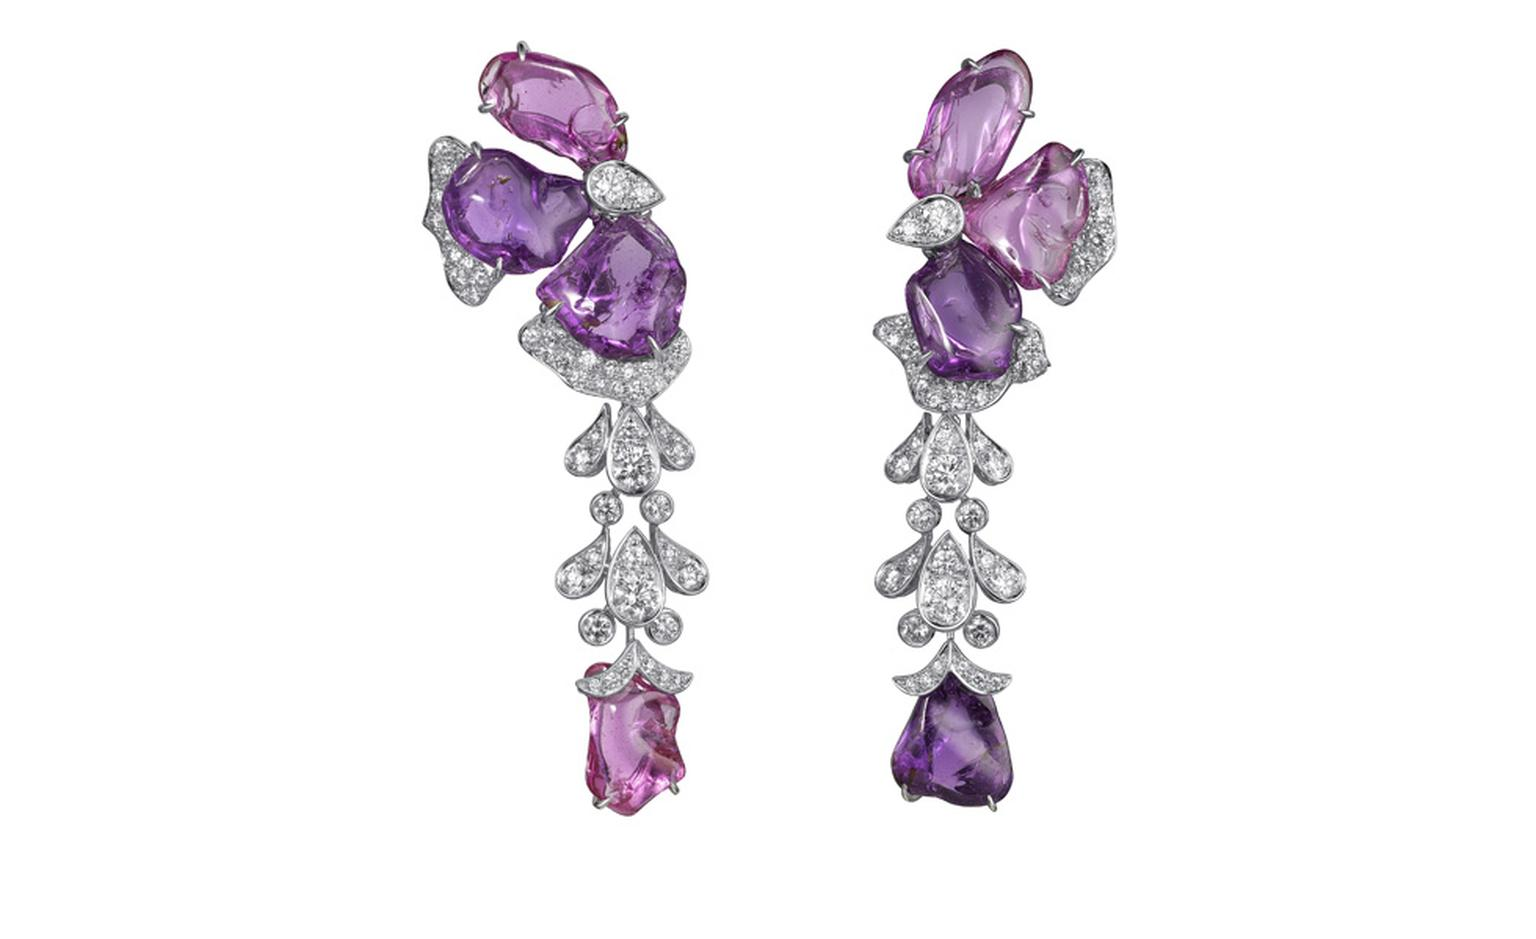 Sortilège de Cartier white earrings with pink and purple sapphires and diamonds.